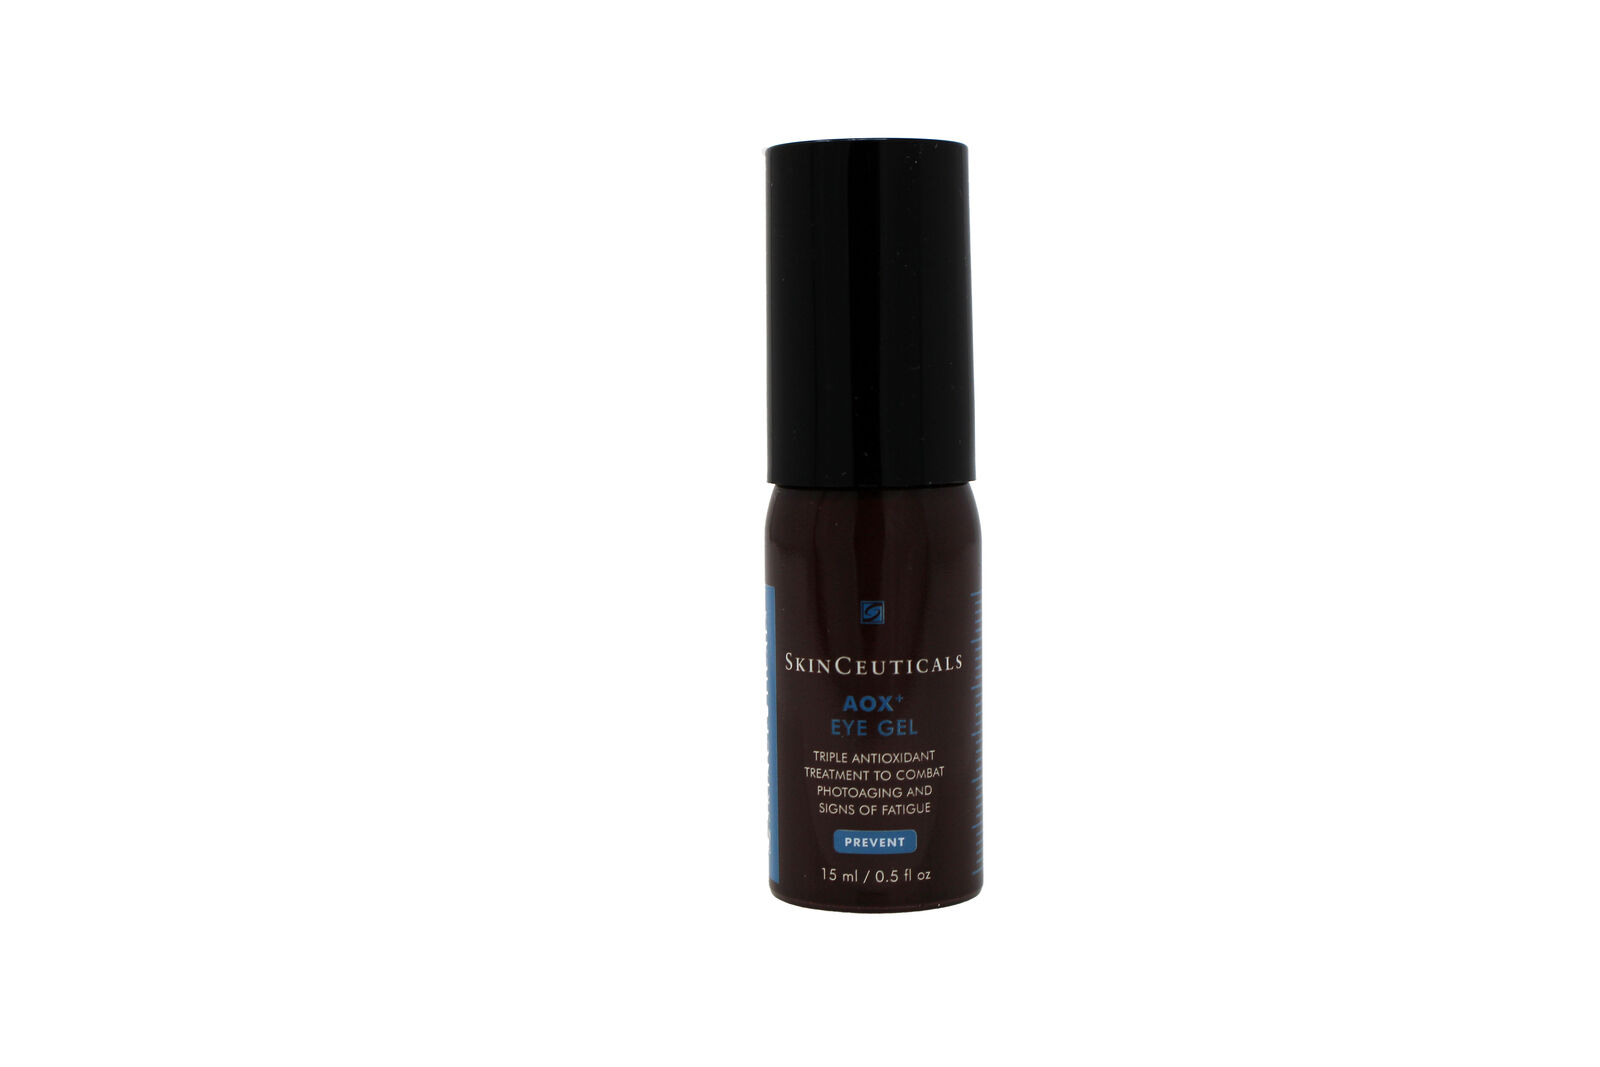 Skinceuticals Aox+ Eye Gel 0.5 Ounce